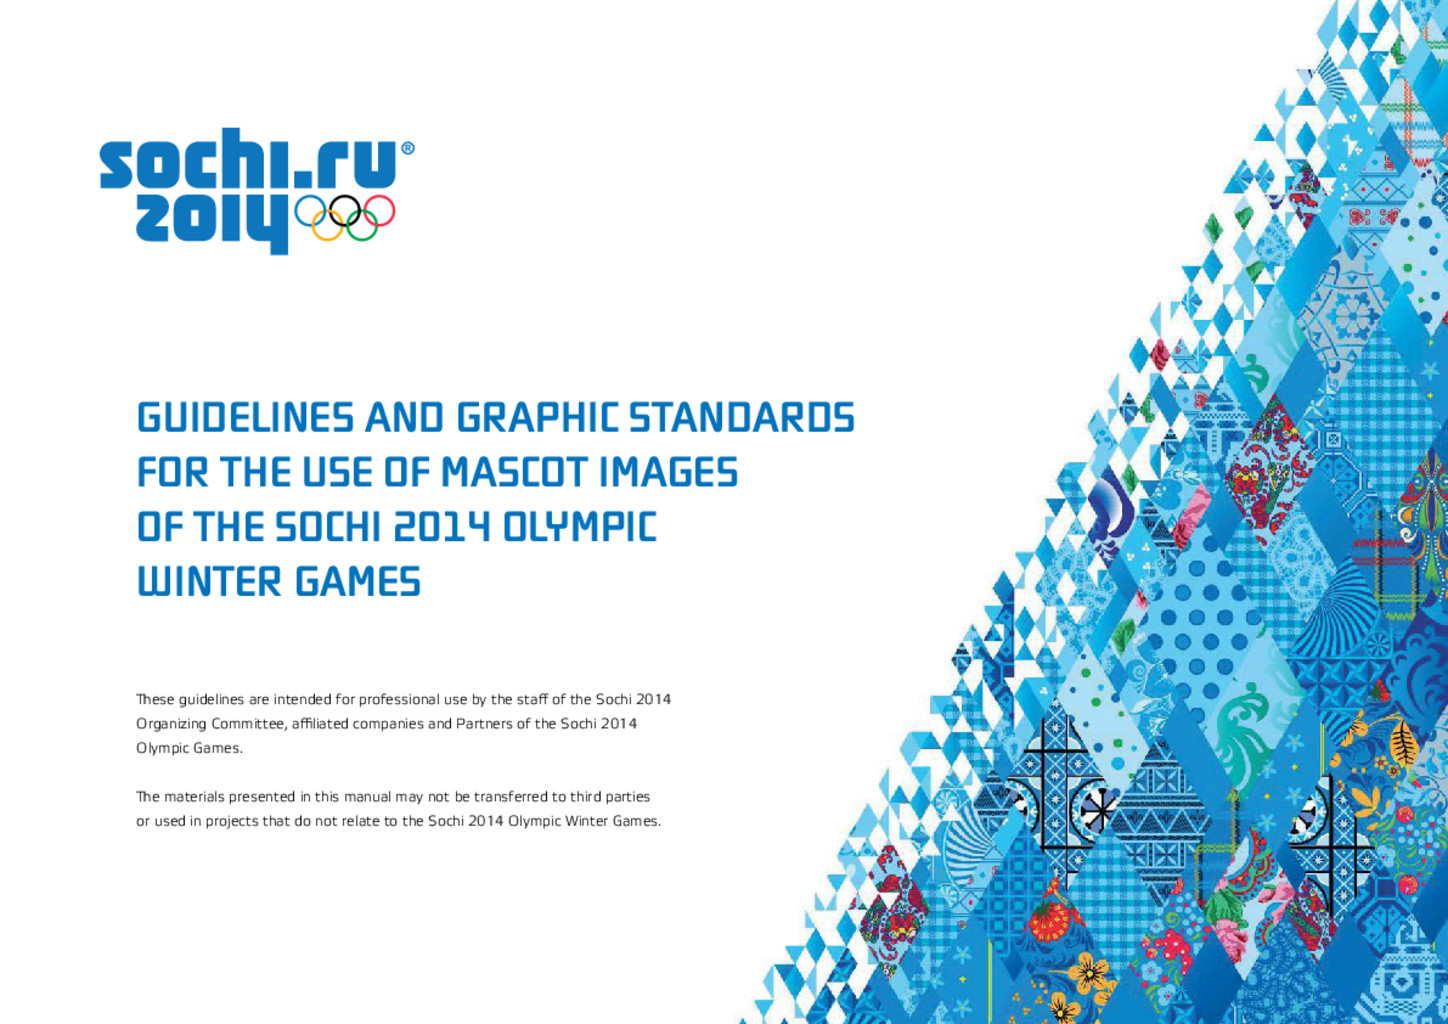 Guidelines and graphic standards for the use of mascot images of the Sochi 2014 Olympic Winter Games / Organizing Committee of XXII Olympic Winter Games and XI Paralympic Winter Games 2014 in Sochi | Olympic Winter Games. Organizing Committee. 22, 2014, Sochi